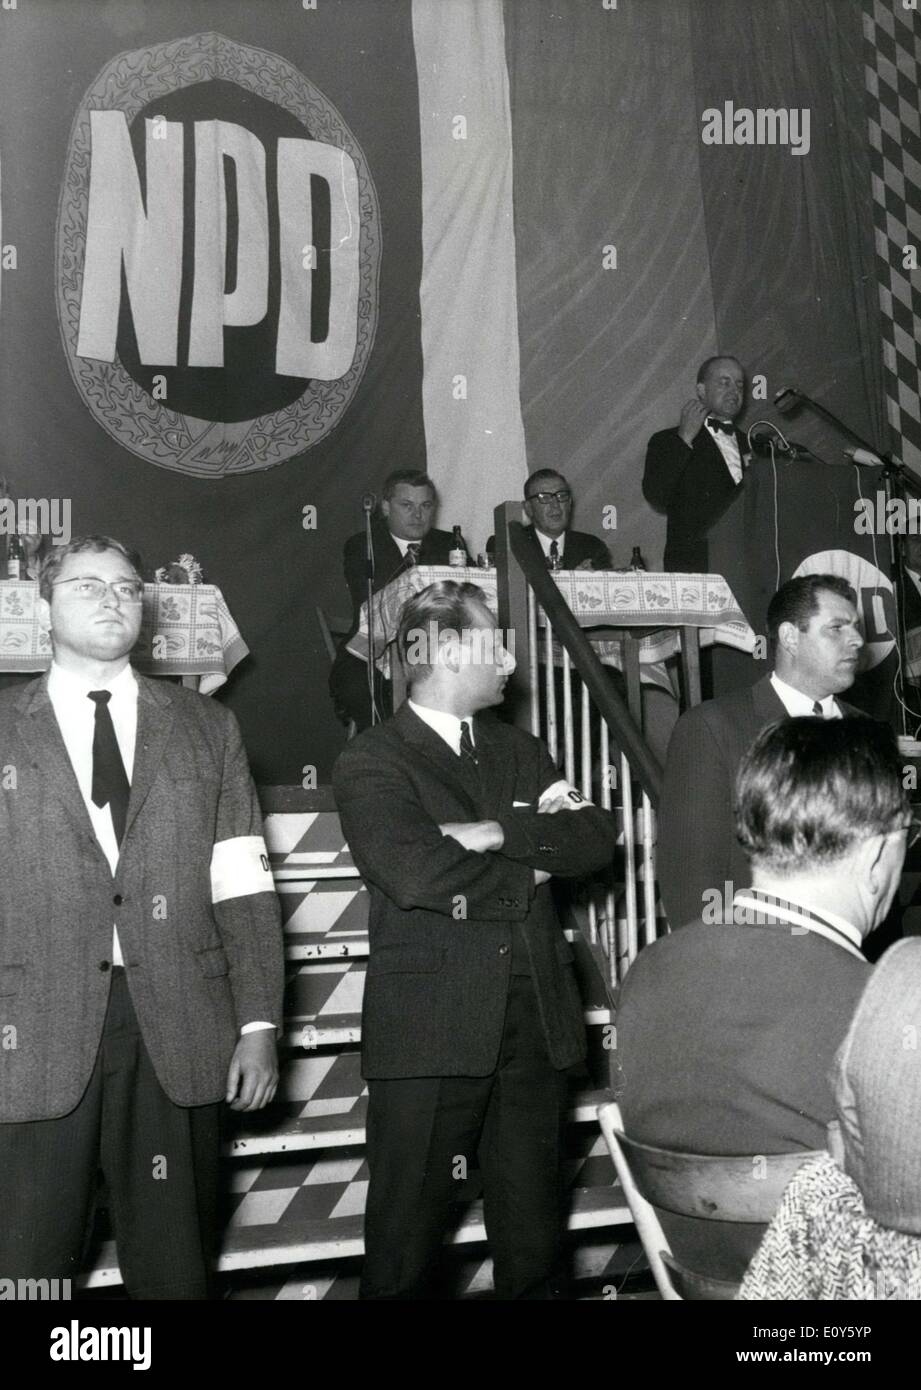 Nov. 22, 1968 - NPD - Huge rally in Munich. Around 800 people took part in a huge rally organized by the National Democratic Party of Germany(NPD) on the evening of Novelber 21; however, it eventually led to rioting. The speaker of the evening was Dr. Pohlmann, parliamentary party leader of the Bavarian NPD - state faction. The rally was organized under the motto: Two Years Work of the NPD in Bavaria. The ushers, denoted by white armbands, quickly worked against the so-called ''disturbers.'' Several people were taken to the hospital - Stock Image